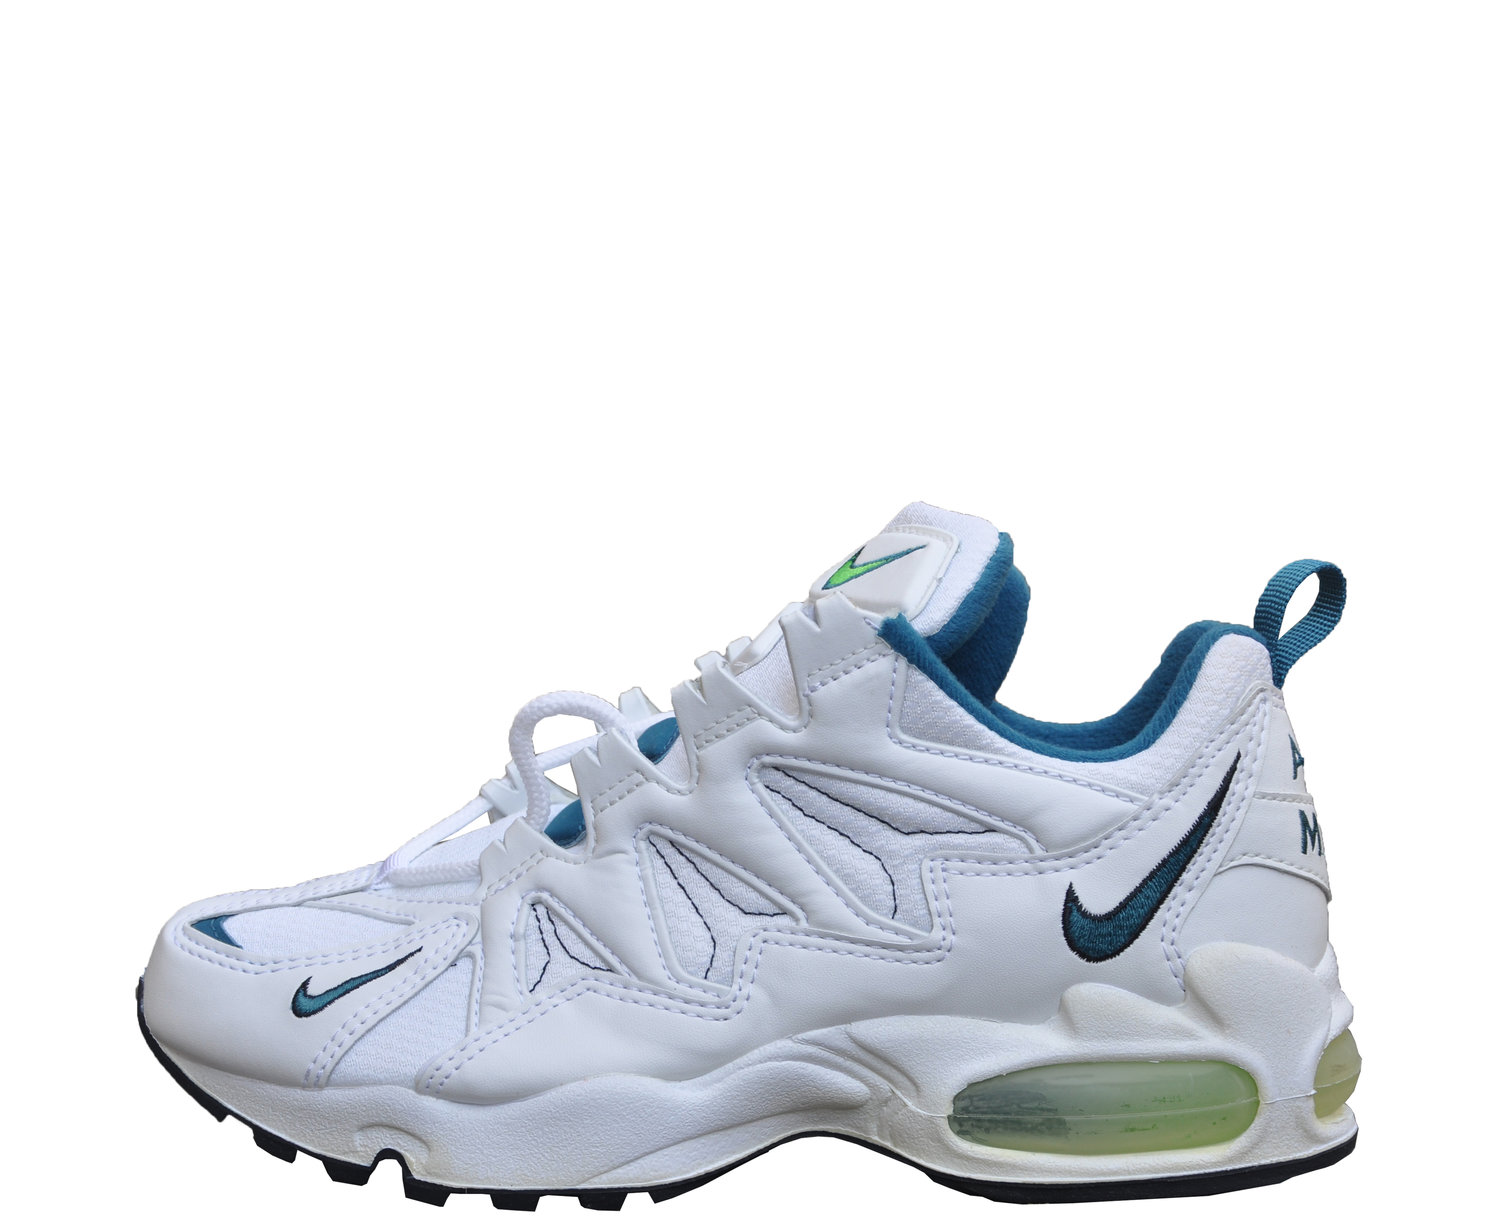 timeless design c9d30 ed695 Women`s Nike Air Max Tailwind 1996 Blue Grass / Mean Green (Size 6.5) DS —  Roots